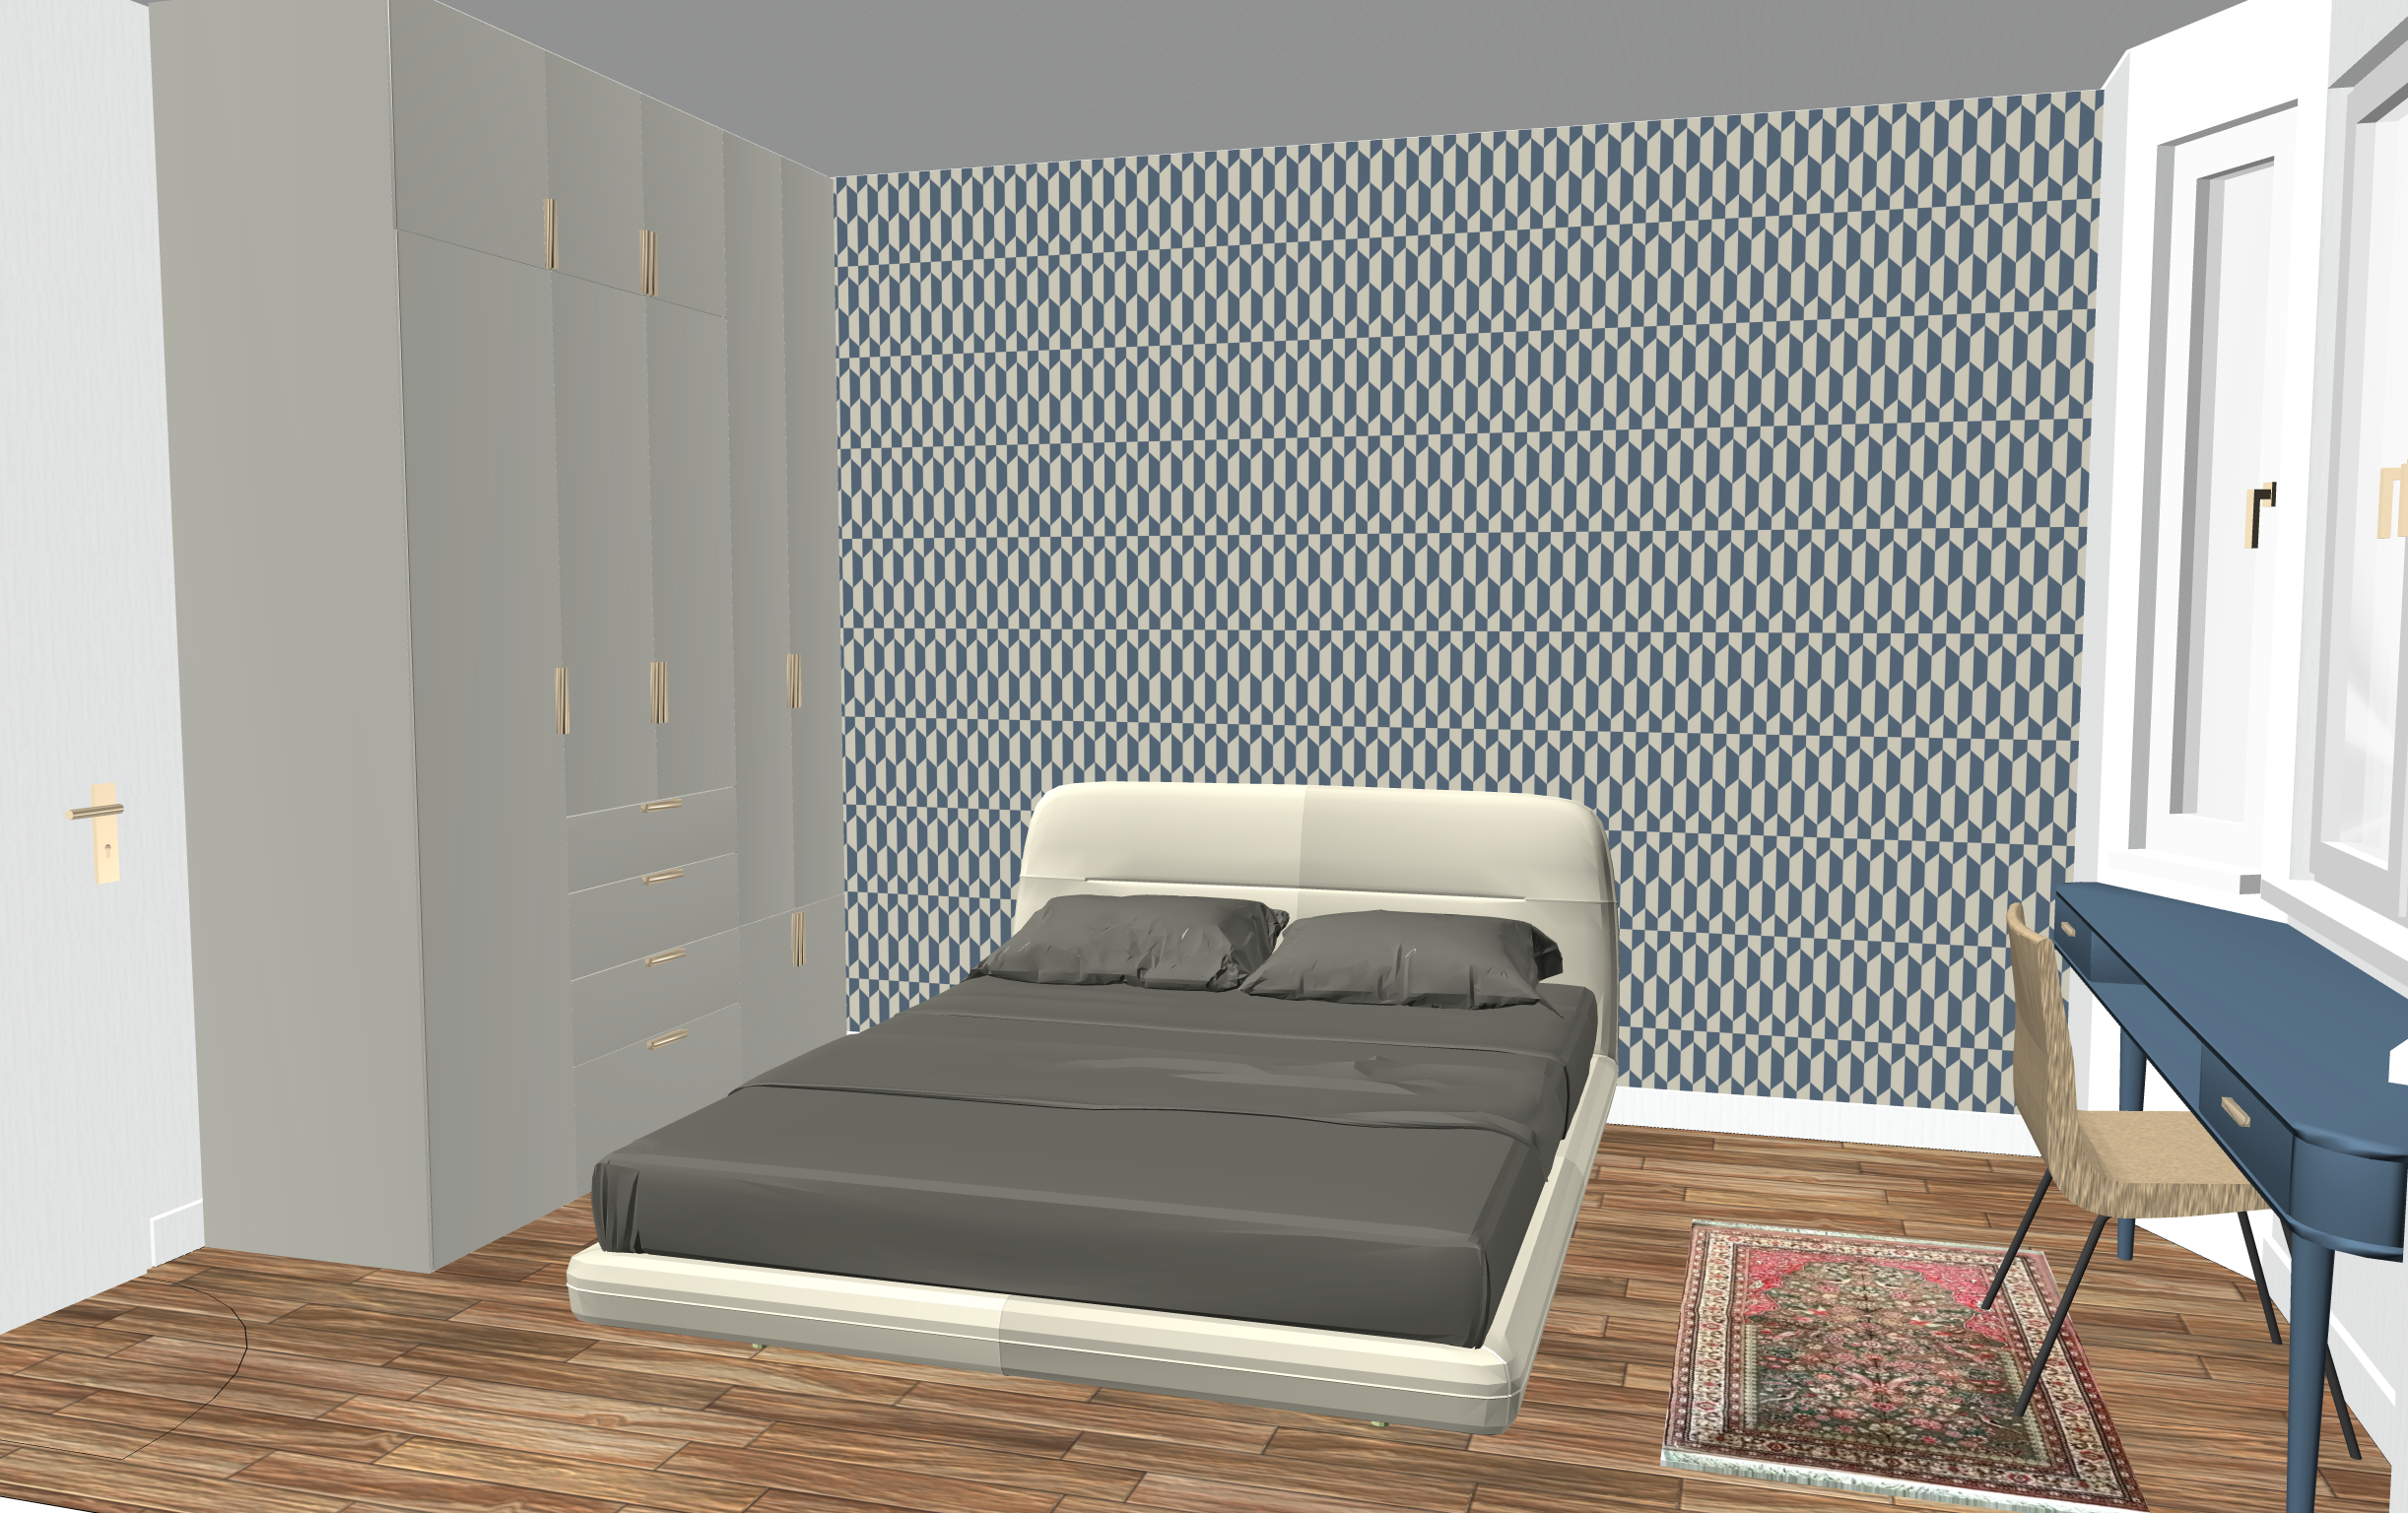 maison_bou_2019_neuilly_3d_13.png